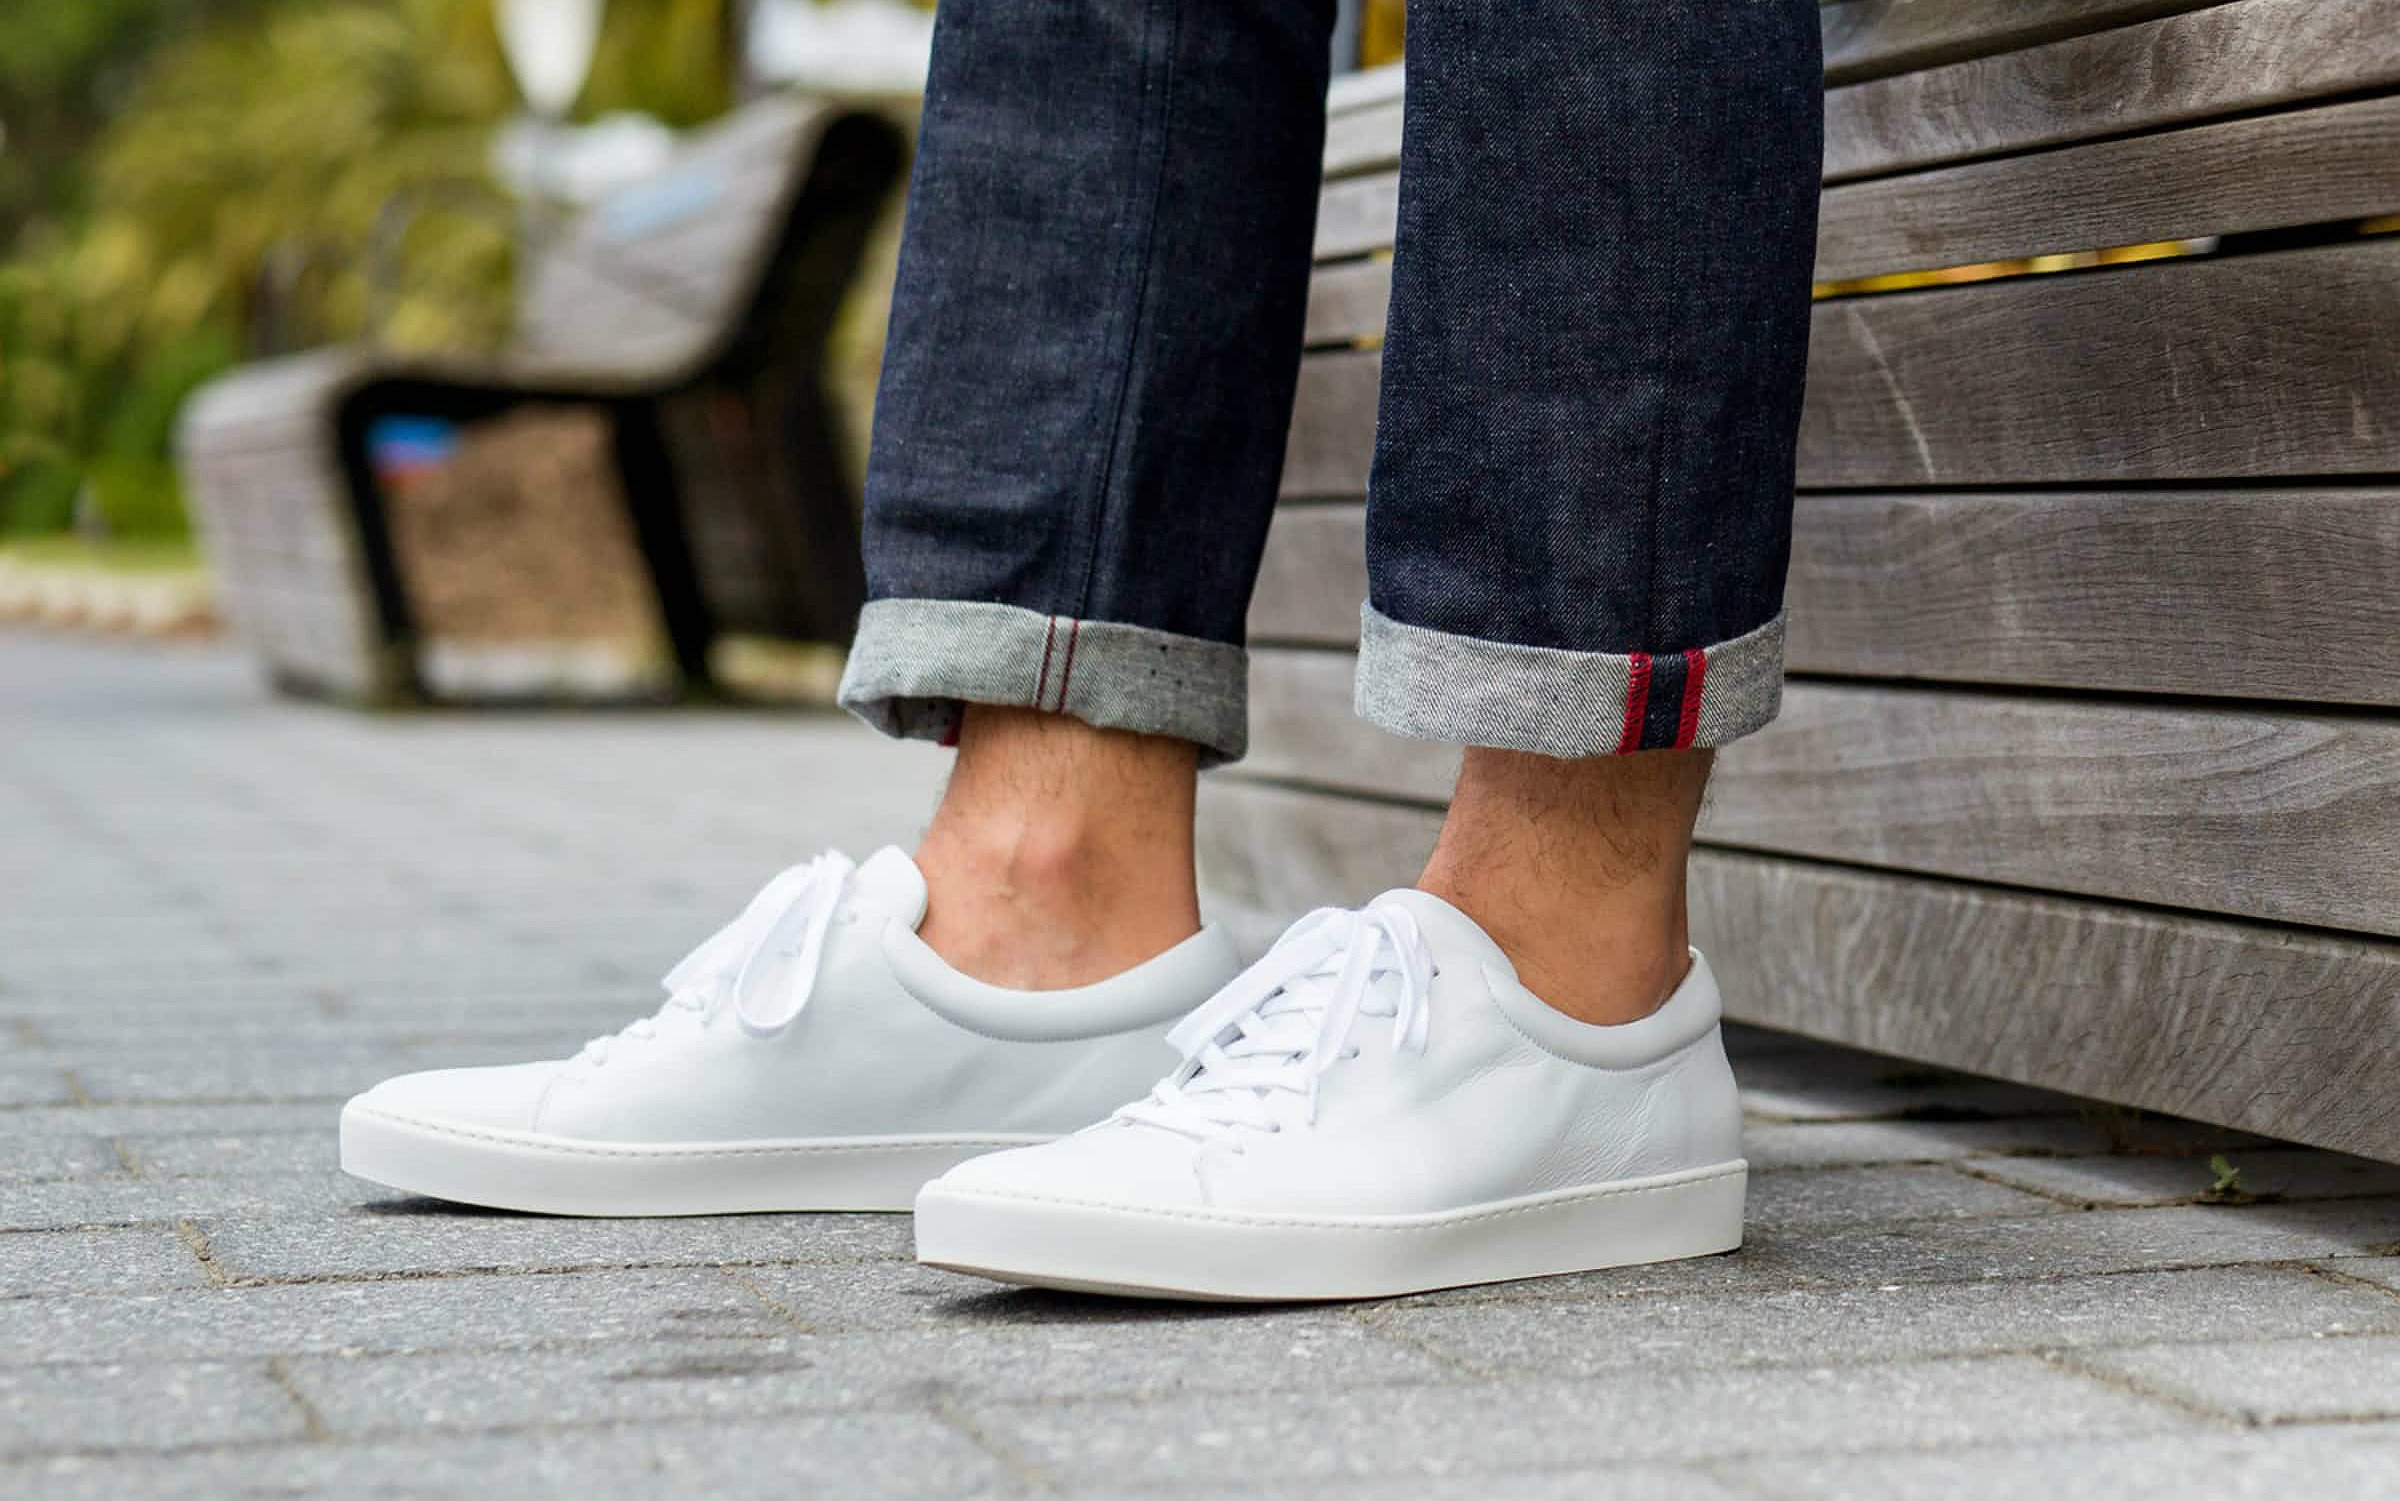 Best All-White Sneakers For Men